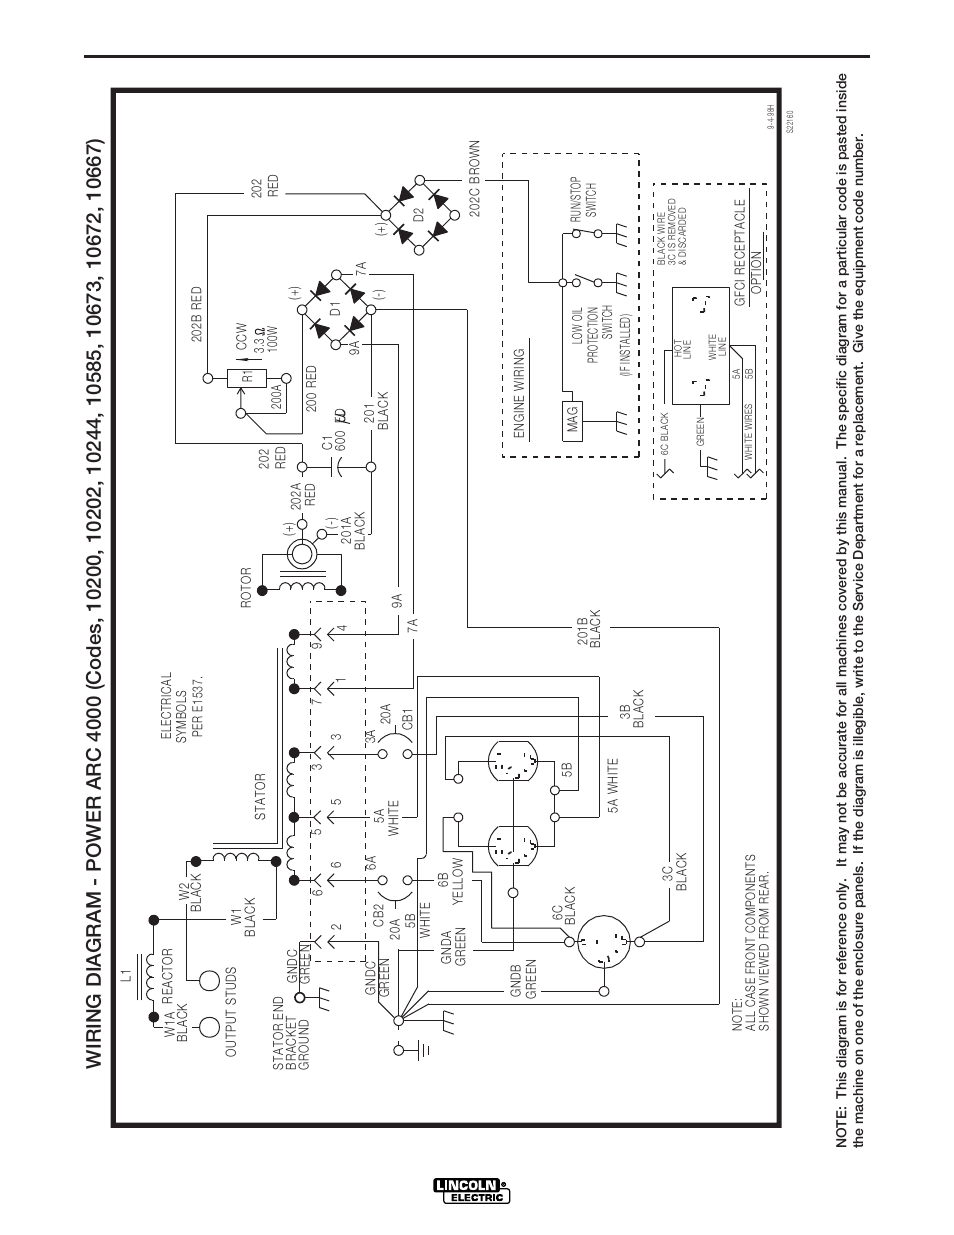 Lincoln Dc 600 Wiring Diagram : 29 Wiring Diagram Images